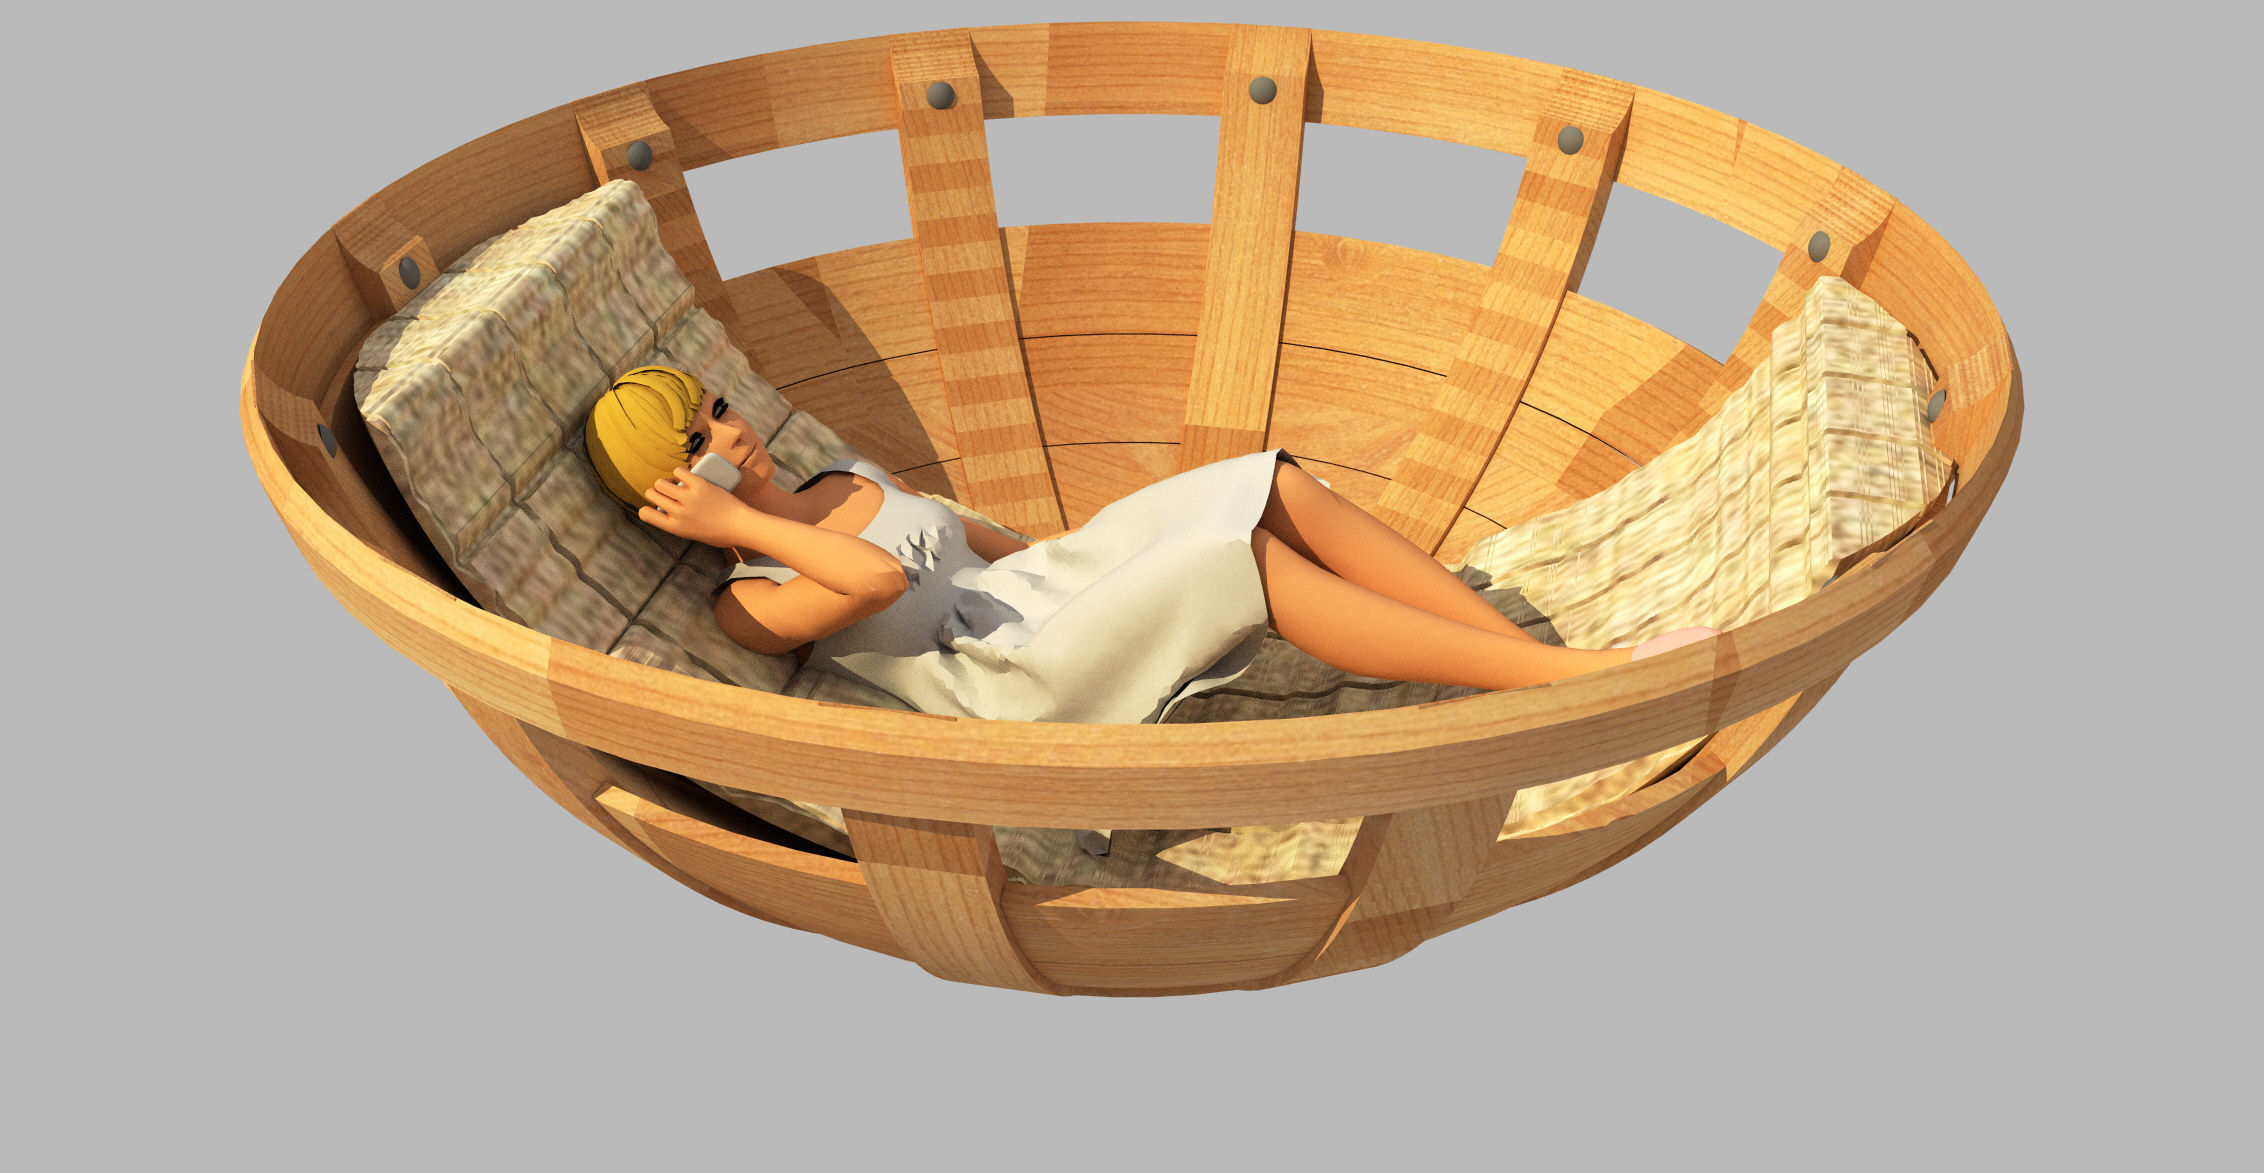 Rocking Chair Free 3d Model Animated 3ds C4d Stl Dae Skp